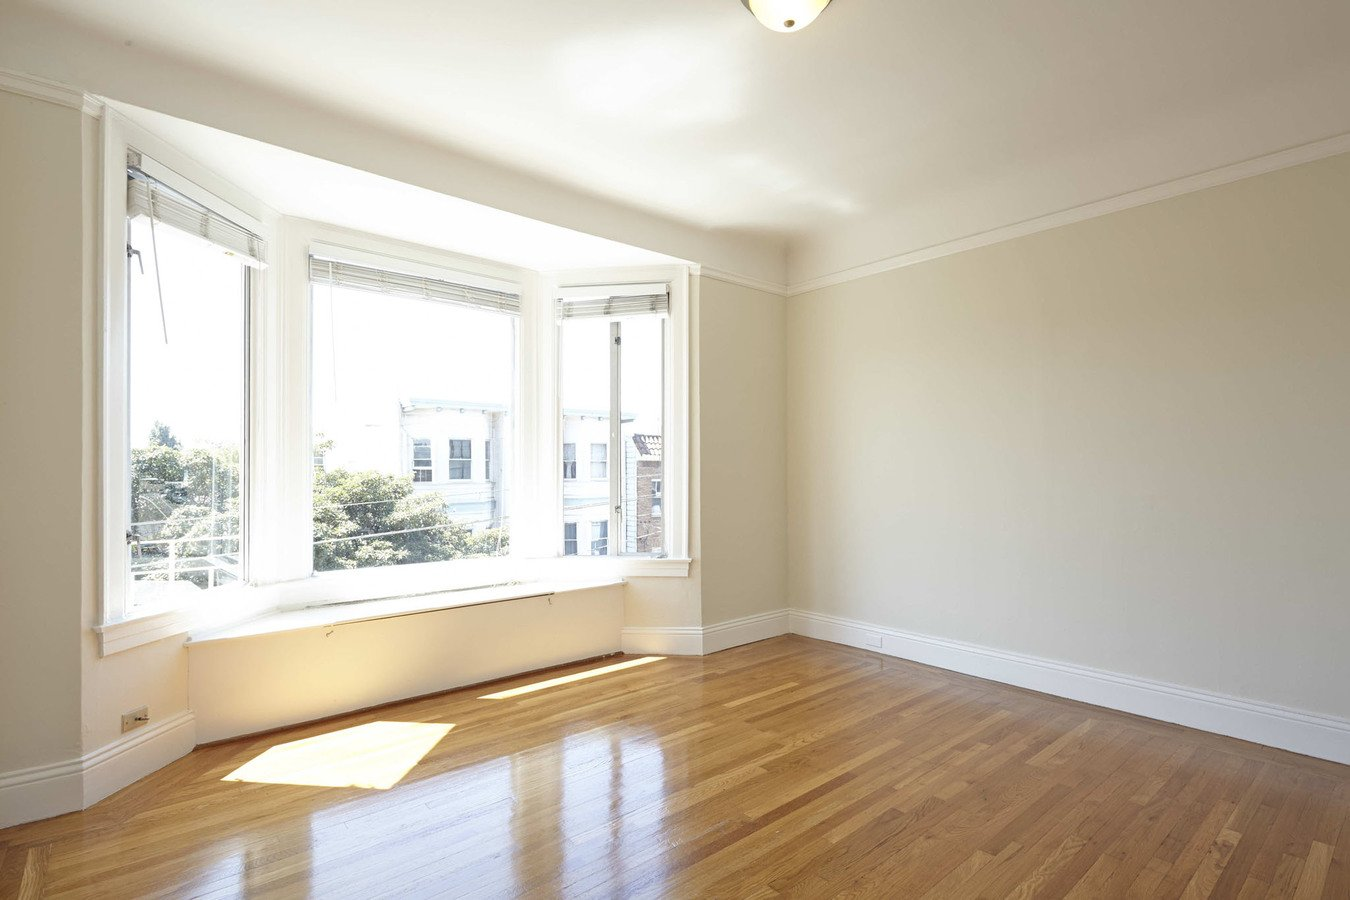 1 Bedroom 1 Bathroom Apartment for rent at 470 14th Street Apartments in San Francisco, CA